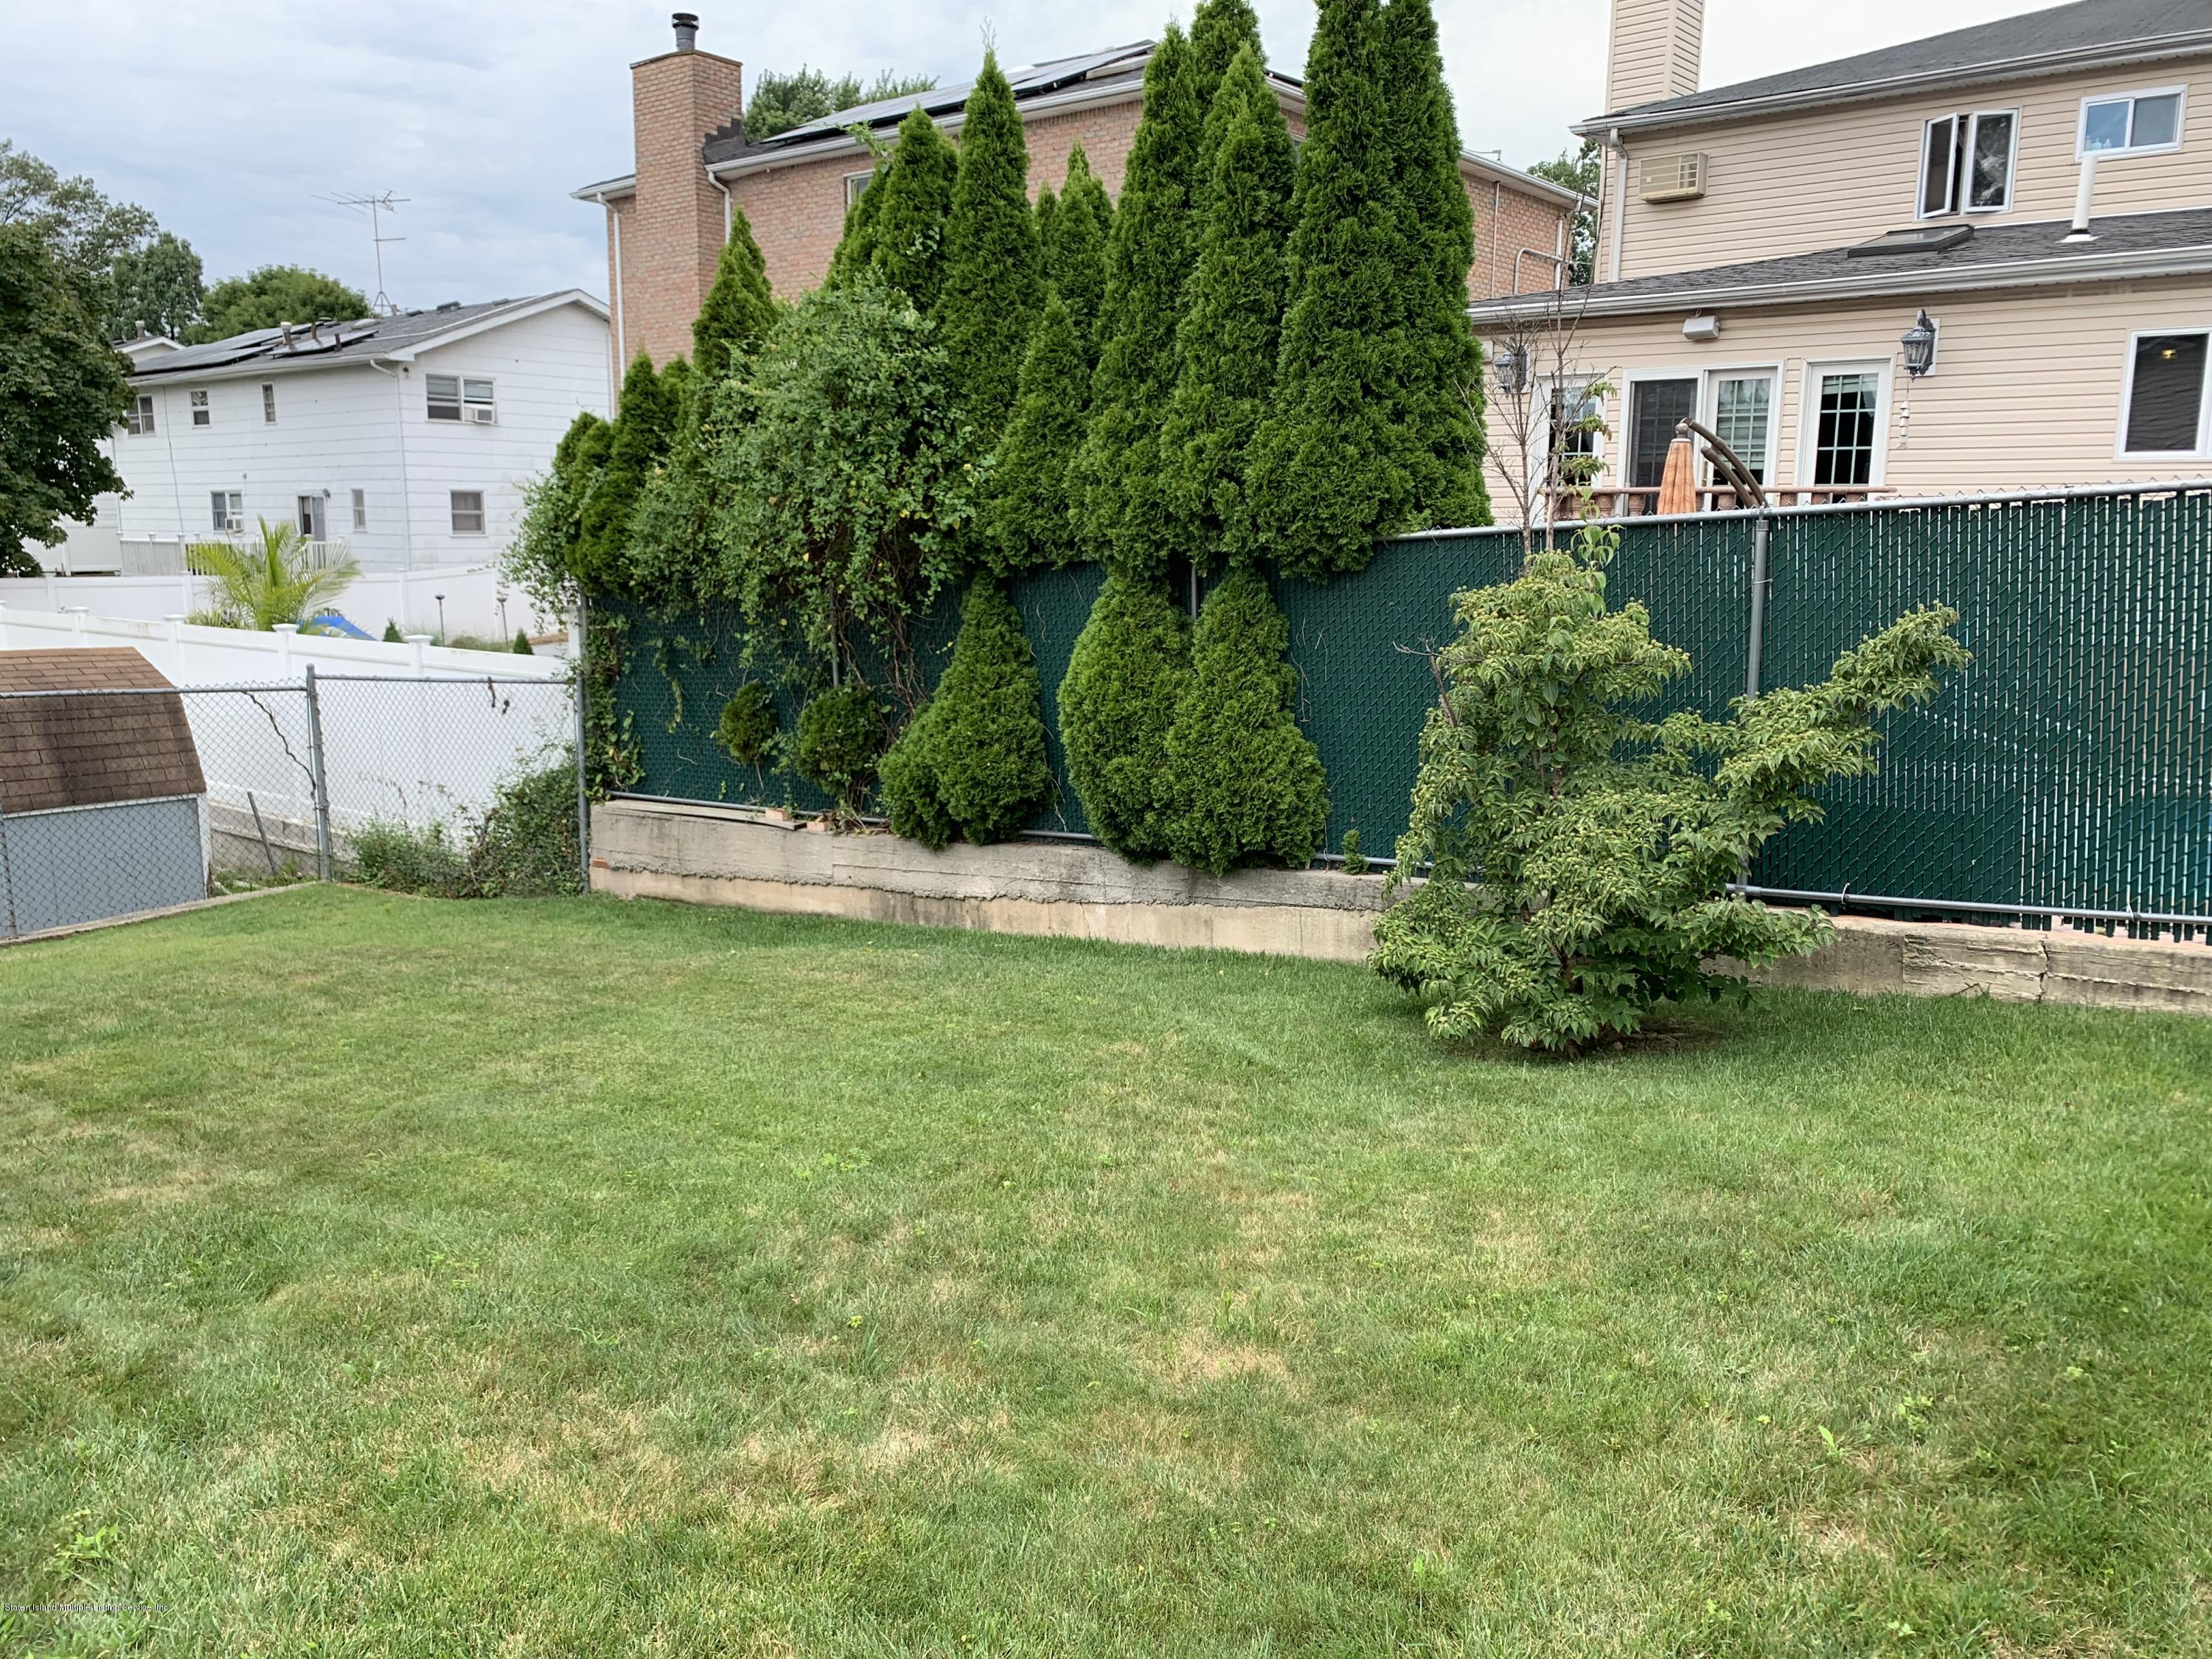 Single Family - Detached 327 Ashland Avenue  Staten Island, NY 10309, MLS-1131430-6